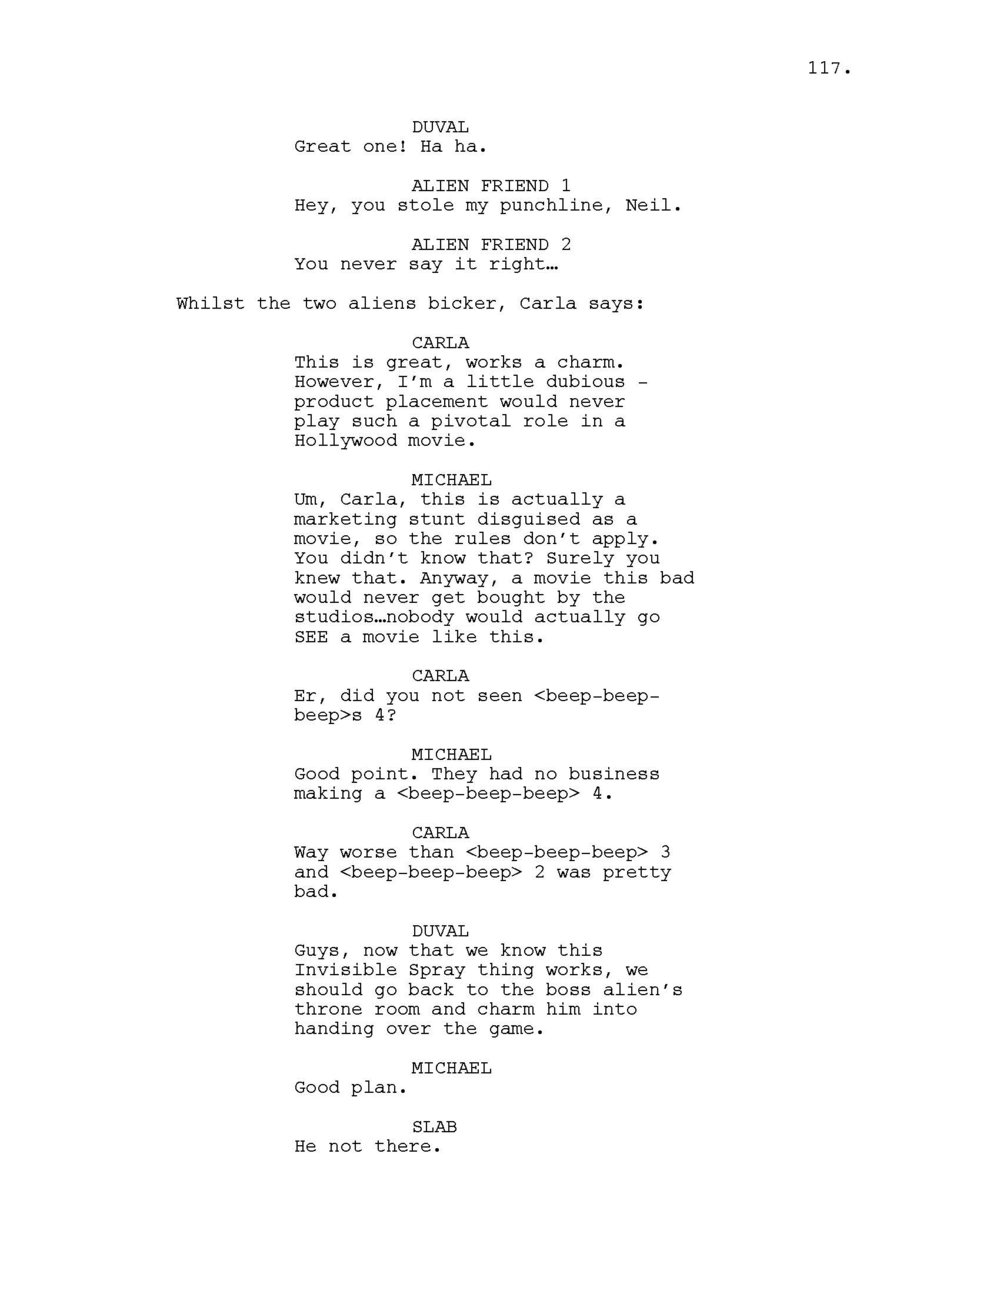 INVISIBLE WORLD SCRIPT_Page_118.jpg